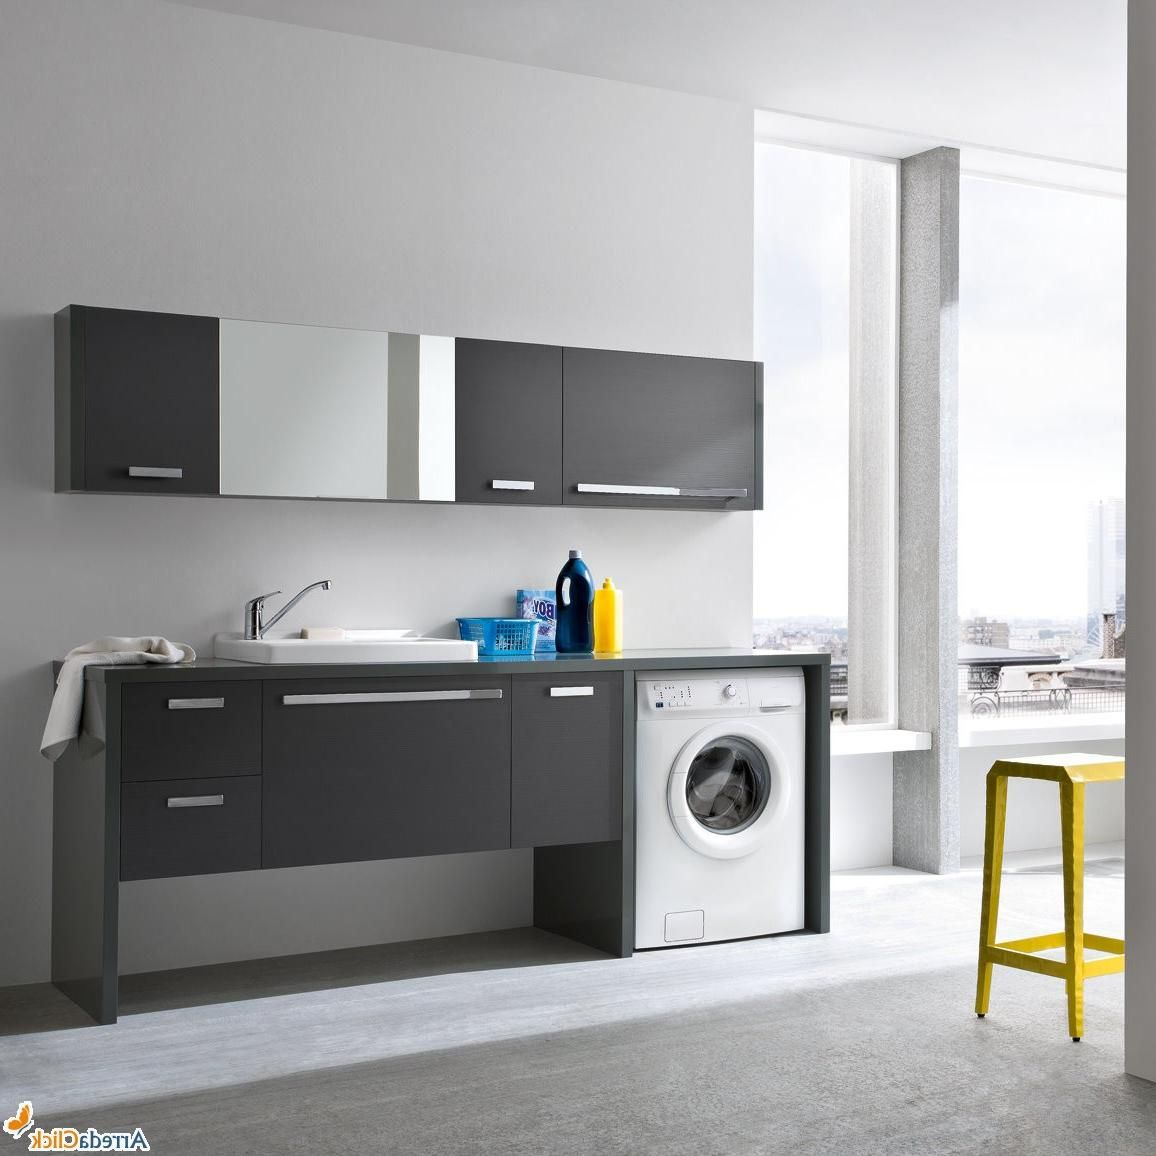 Washing Machine In Kitchen Design: Pin By Www.tapja.com On Apartment